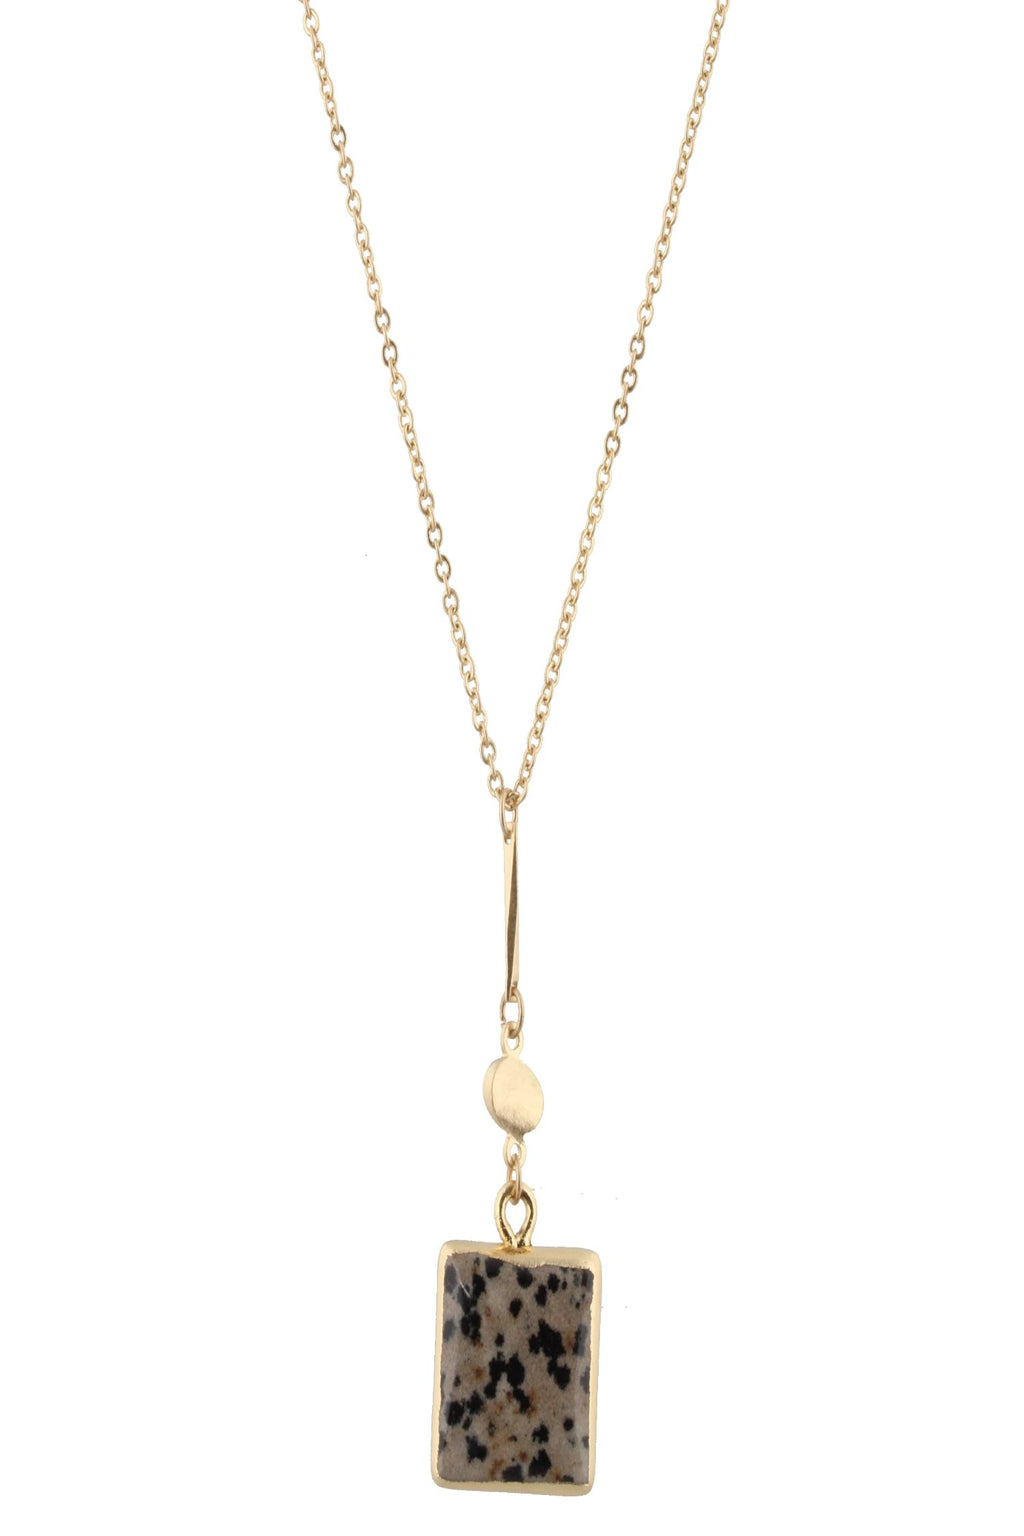 JM Sayler Dalmation Square Pendant Necklace - Free Souls Boutique